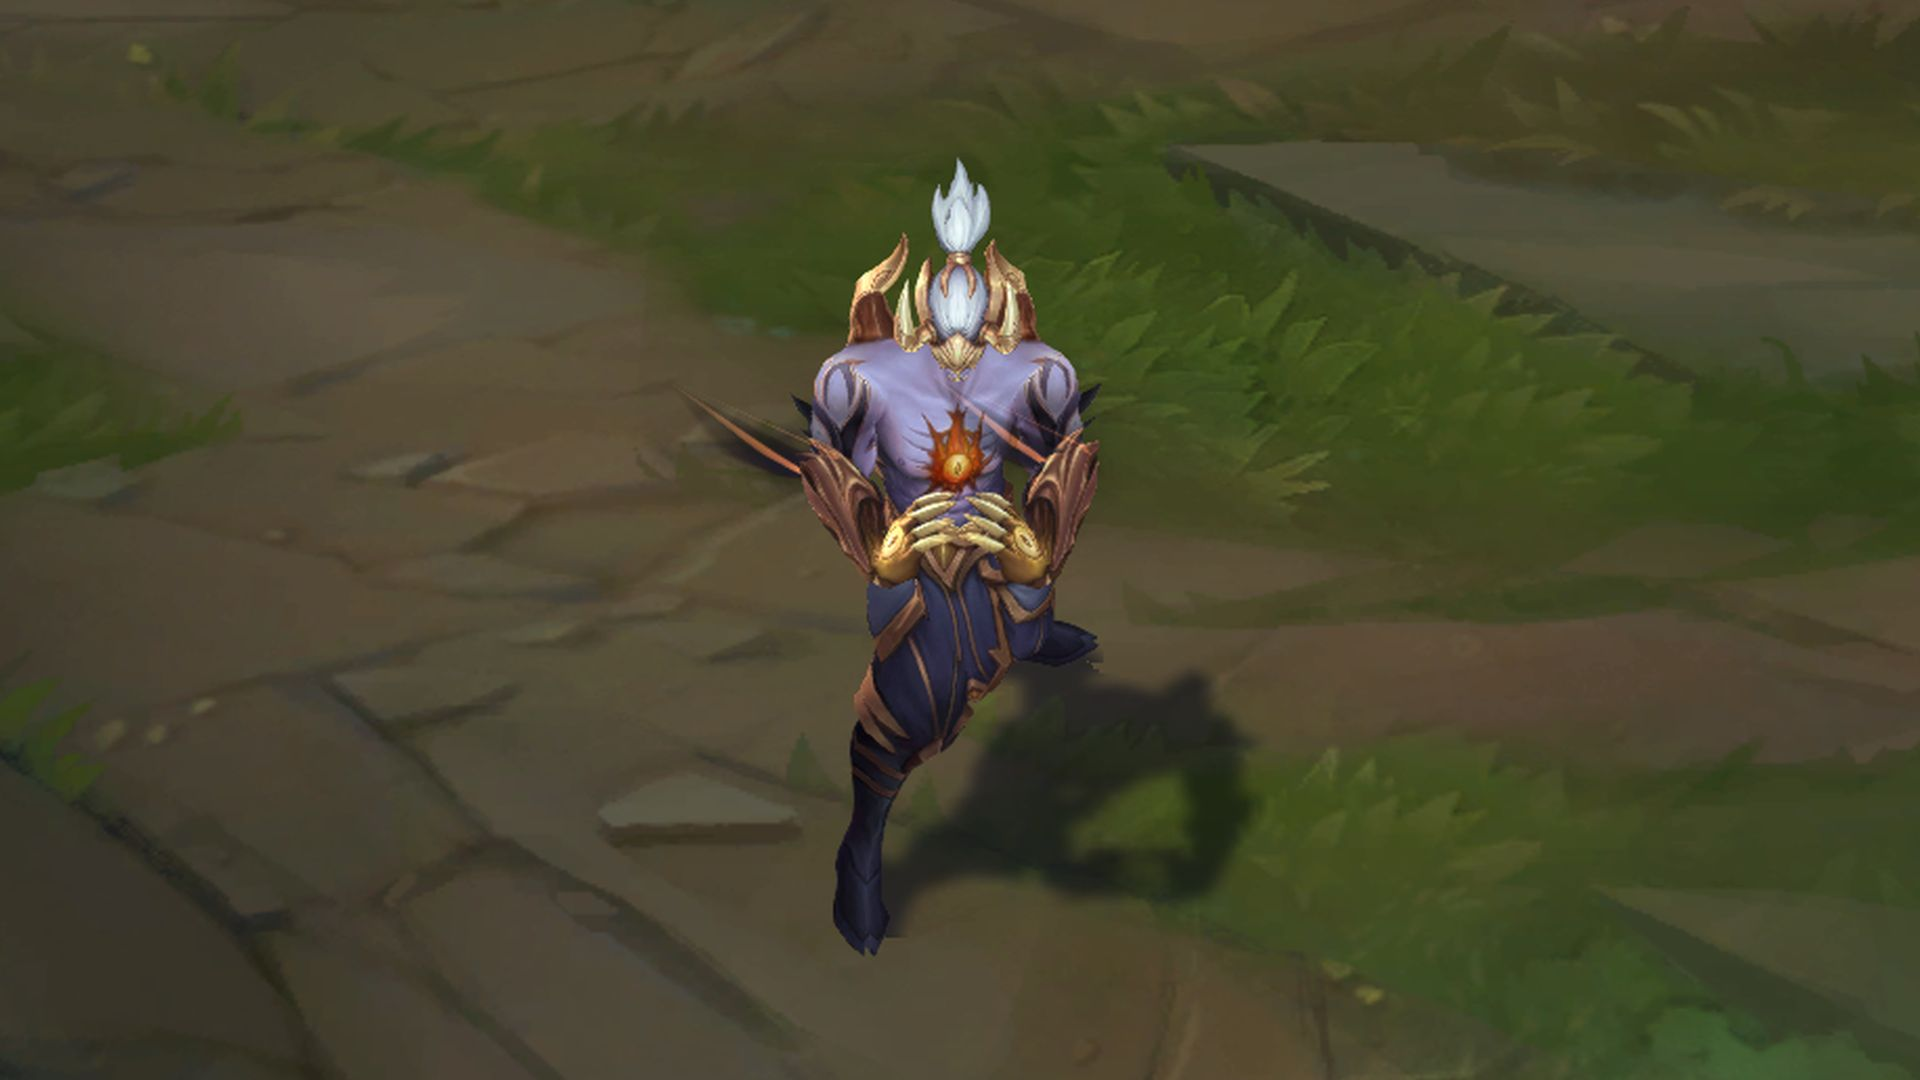 League Of Legends Patch 9 24 And 9 24b Notes Aphelios Diana Changes And Loads Of Skins Pcgamesn Check out aphelios' incredibly complex spell kit. league of legends patch 9 24 and 9 24b